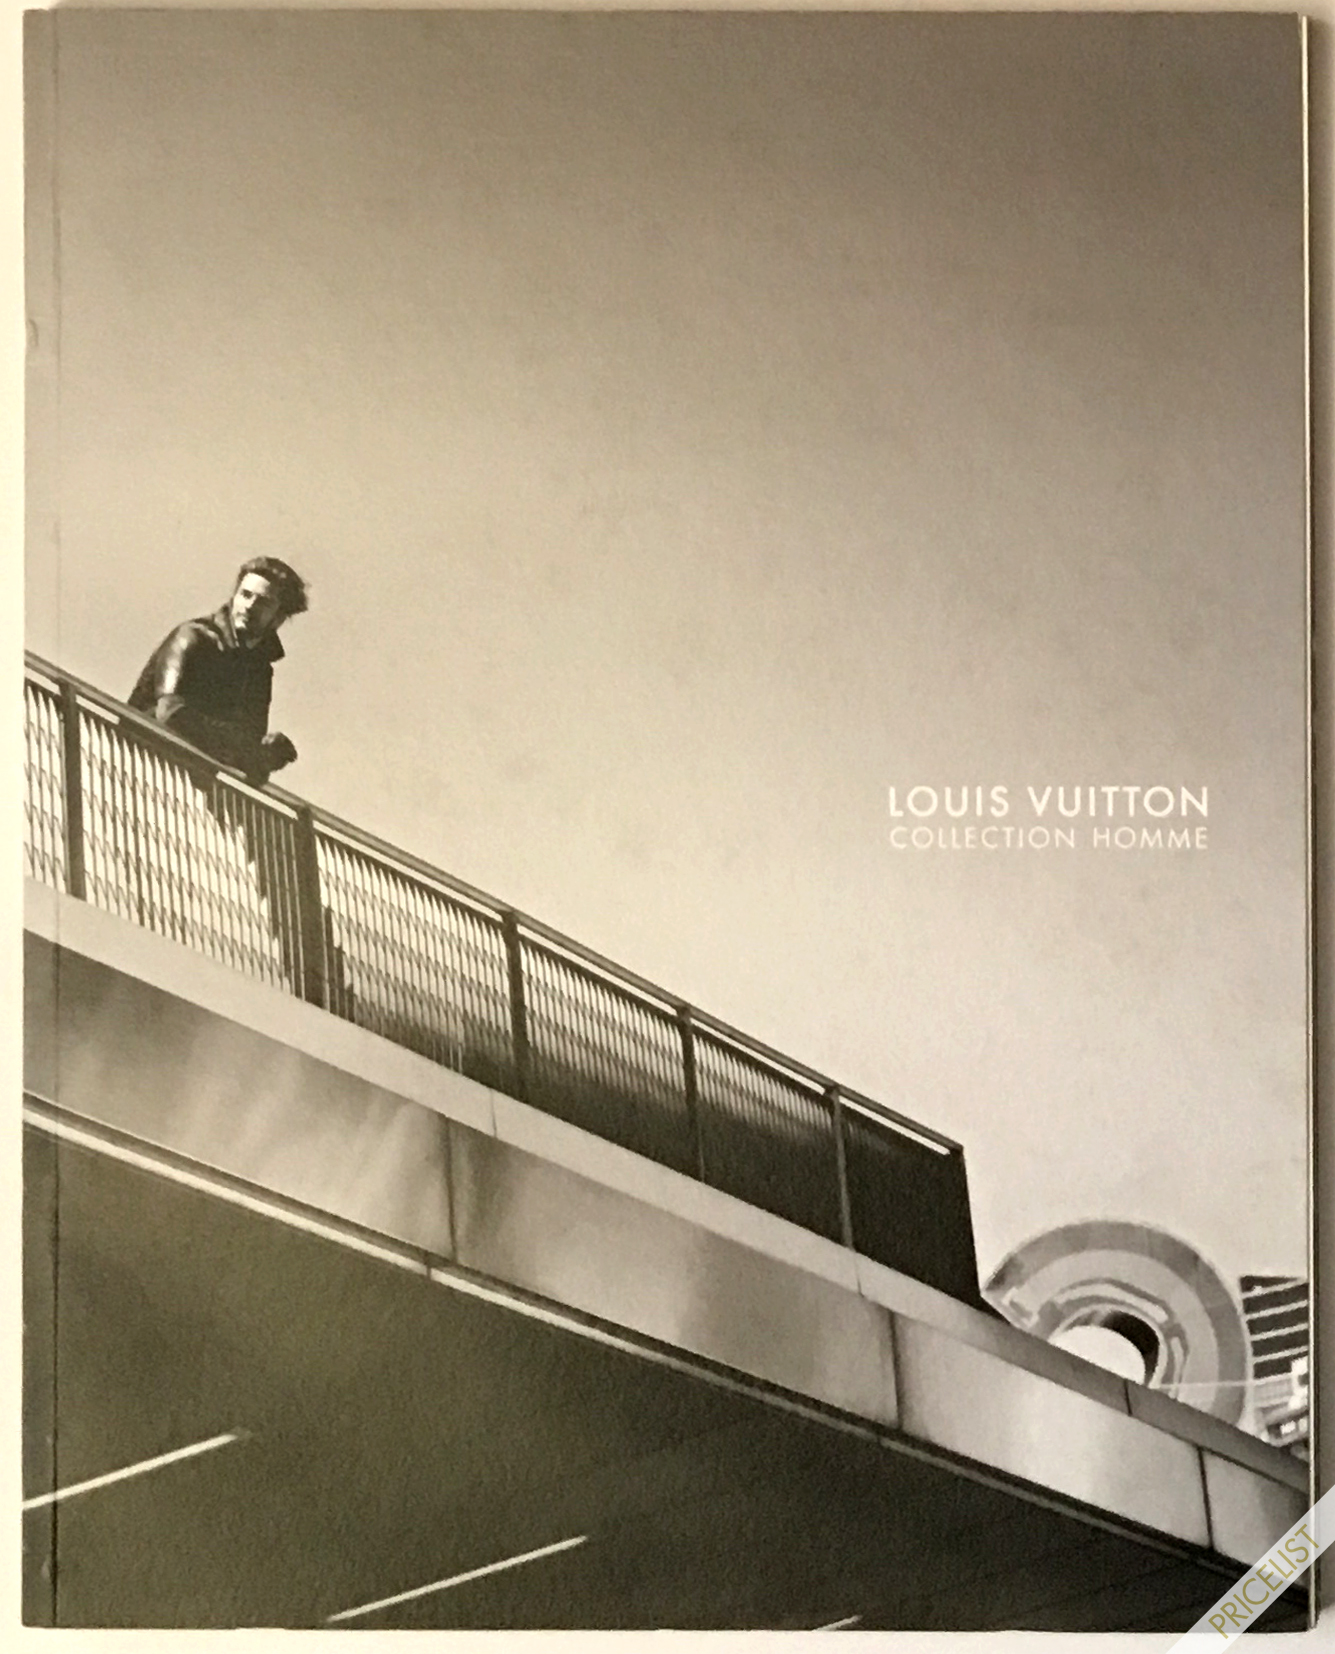 Louis Vuitton Paris Fashion Catalog Fall Winter Pret a Porter Ready to Wear RTW Cover Automne - Hiver Marc Jacobs Men Homme 2011- 2012 Leather Jacket